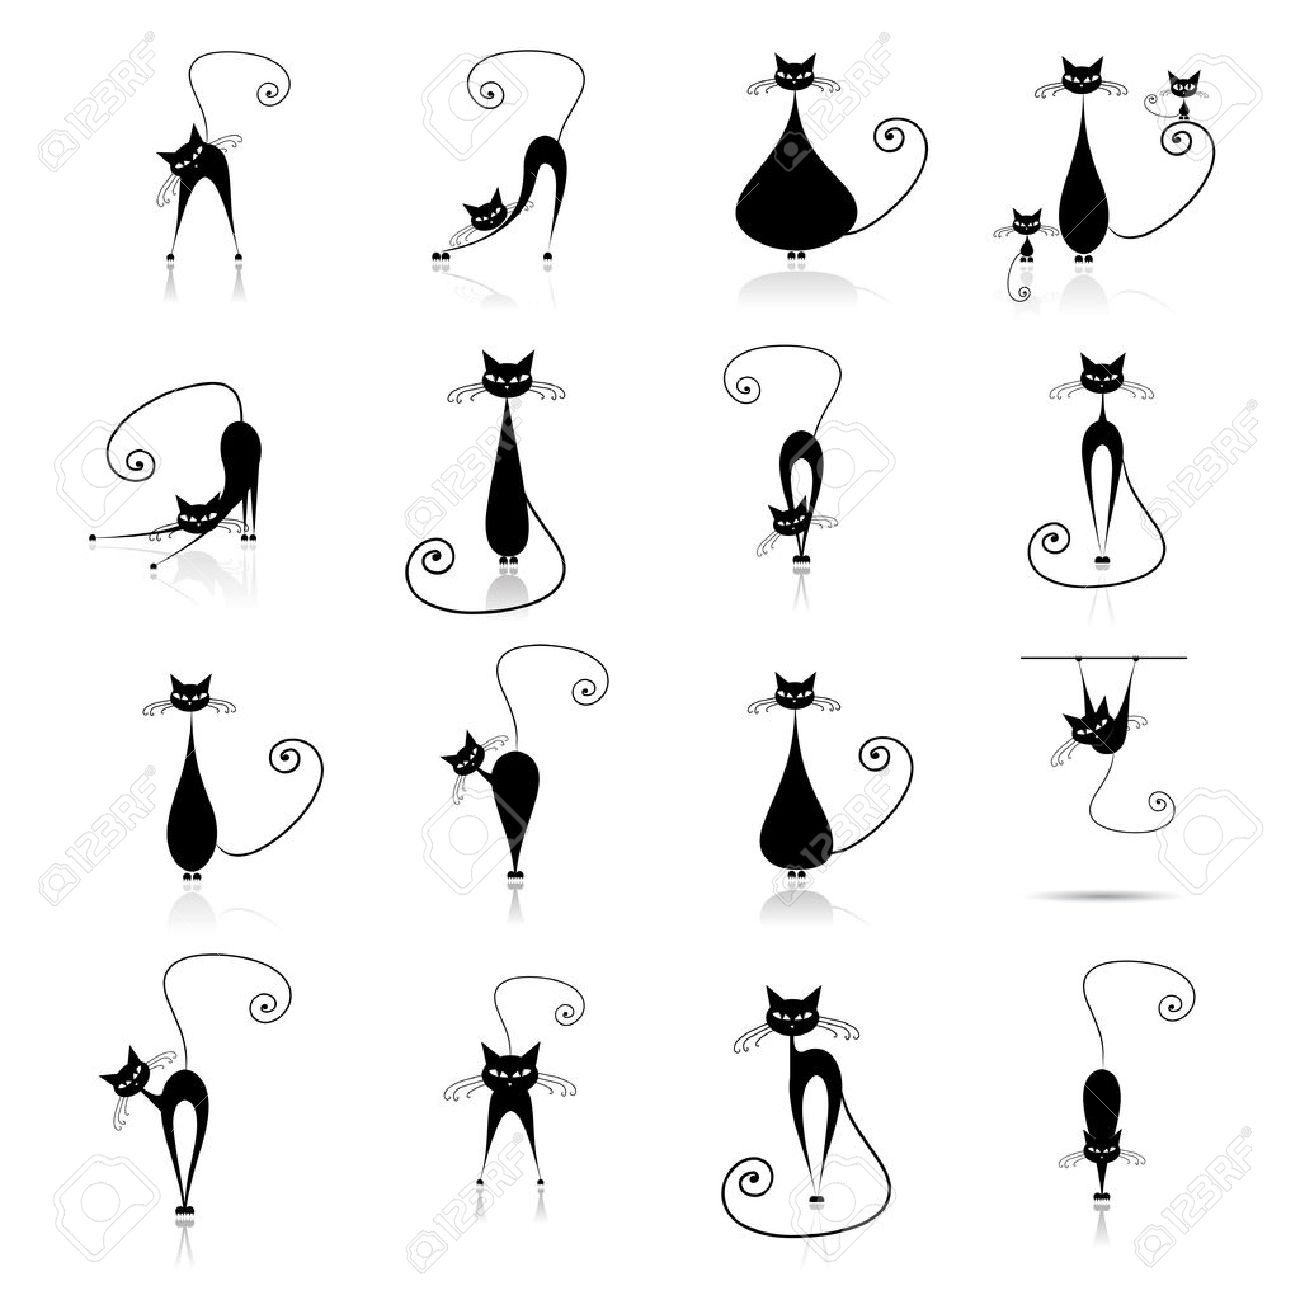 Black cat silhouette collections Stock Vector - 5942692